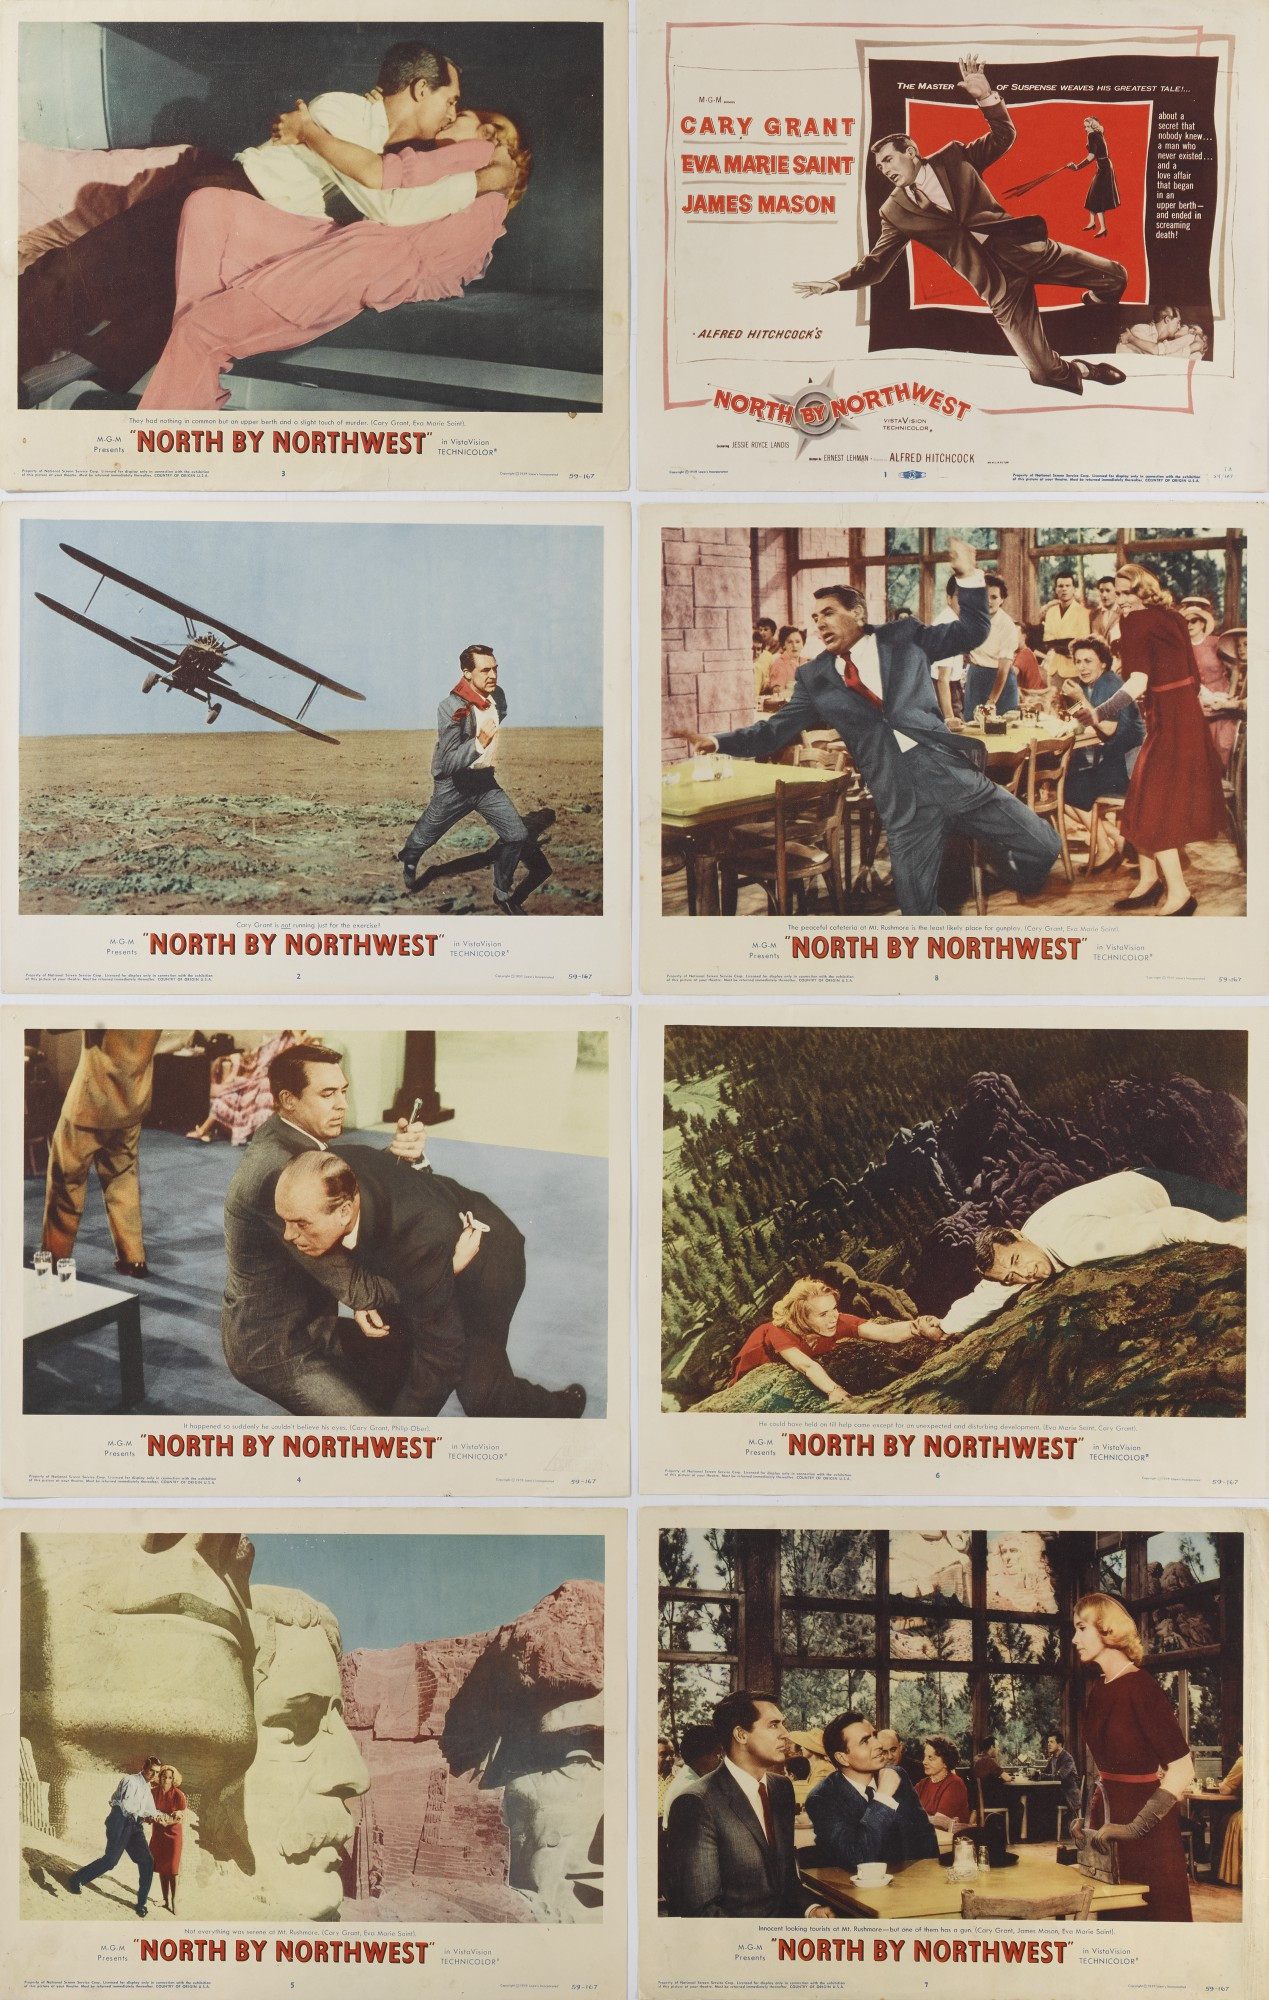 NORTH BY NORTHWEST (1959) COMPLETE SET OF LOBBY CARDS, US